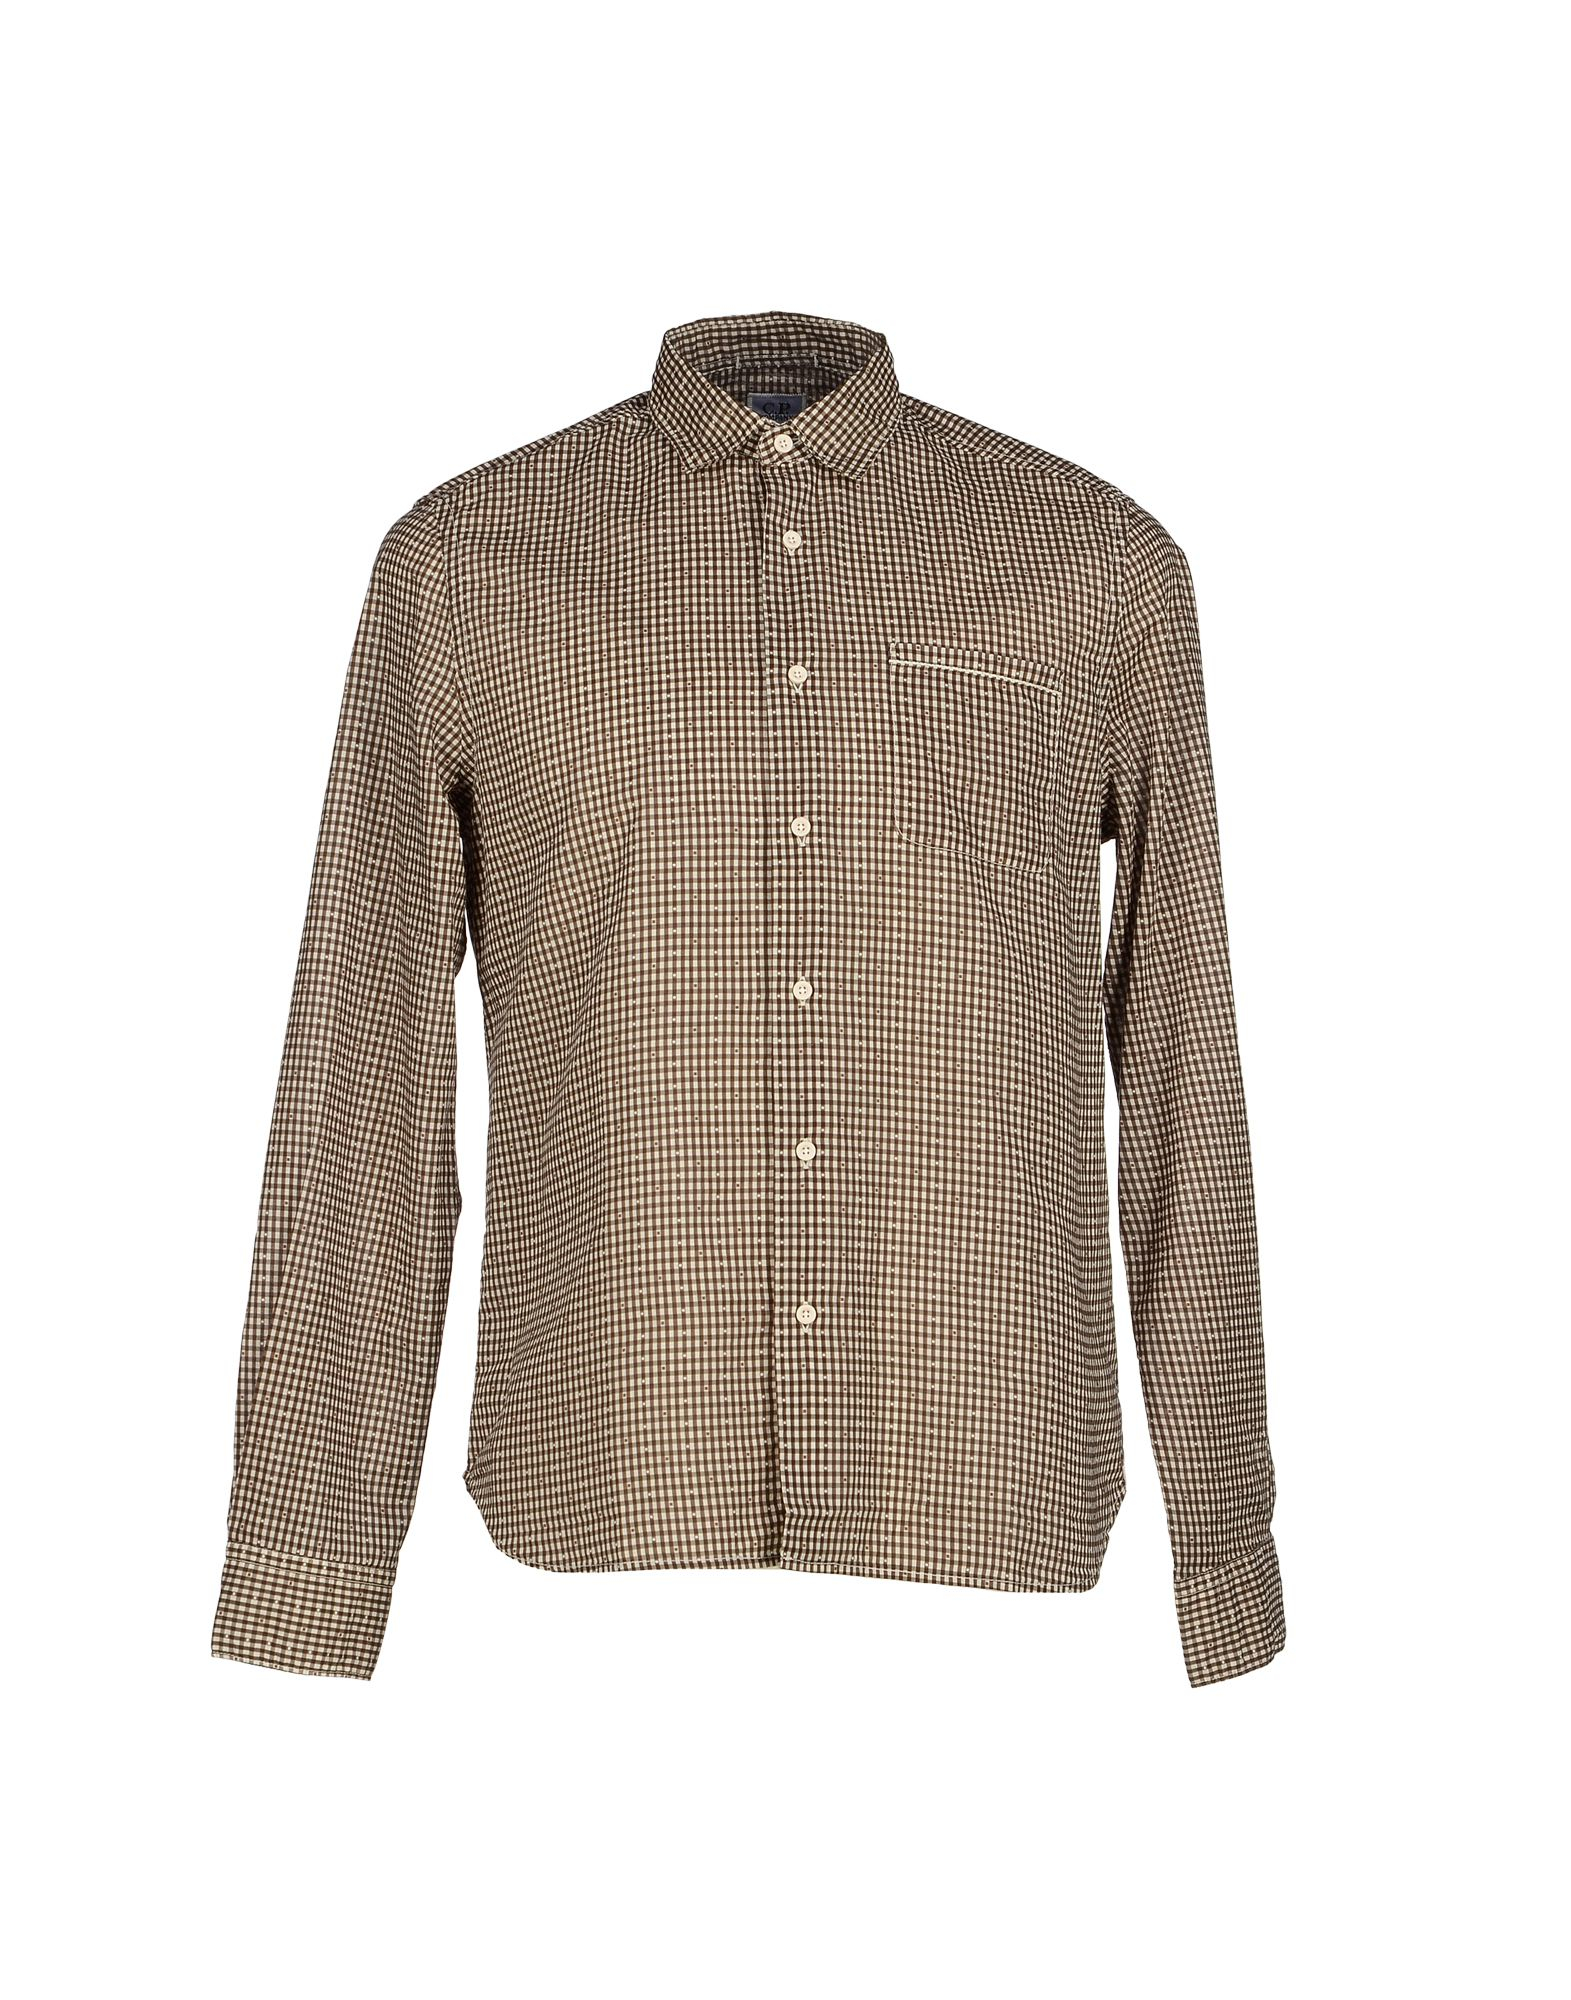 Lyst c p company shirt in brown for men for Black brown mens shirts